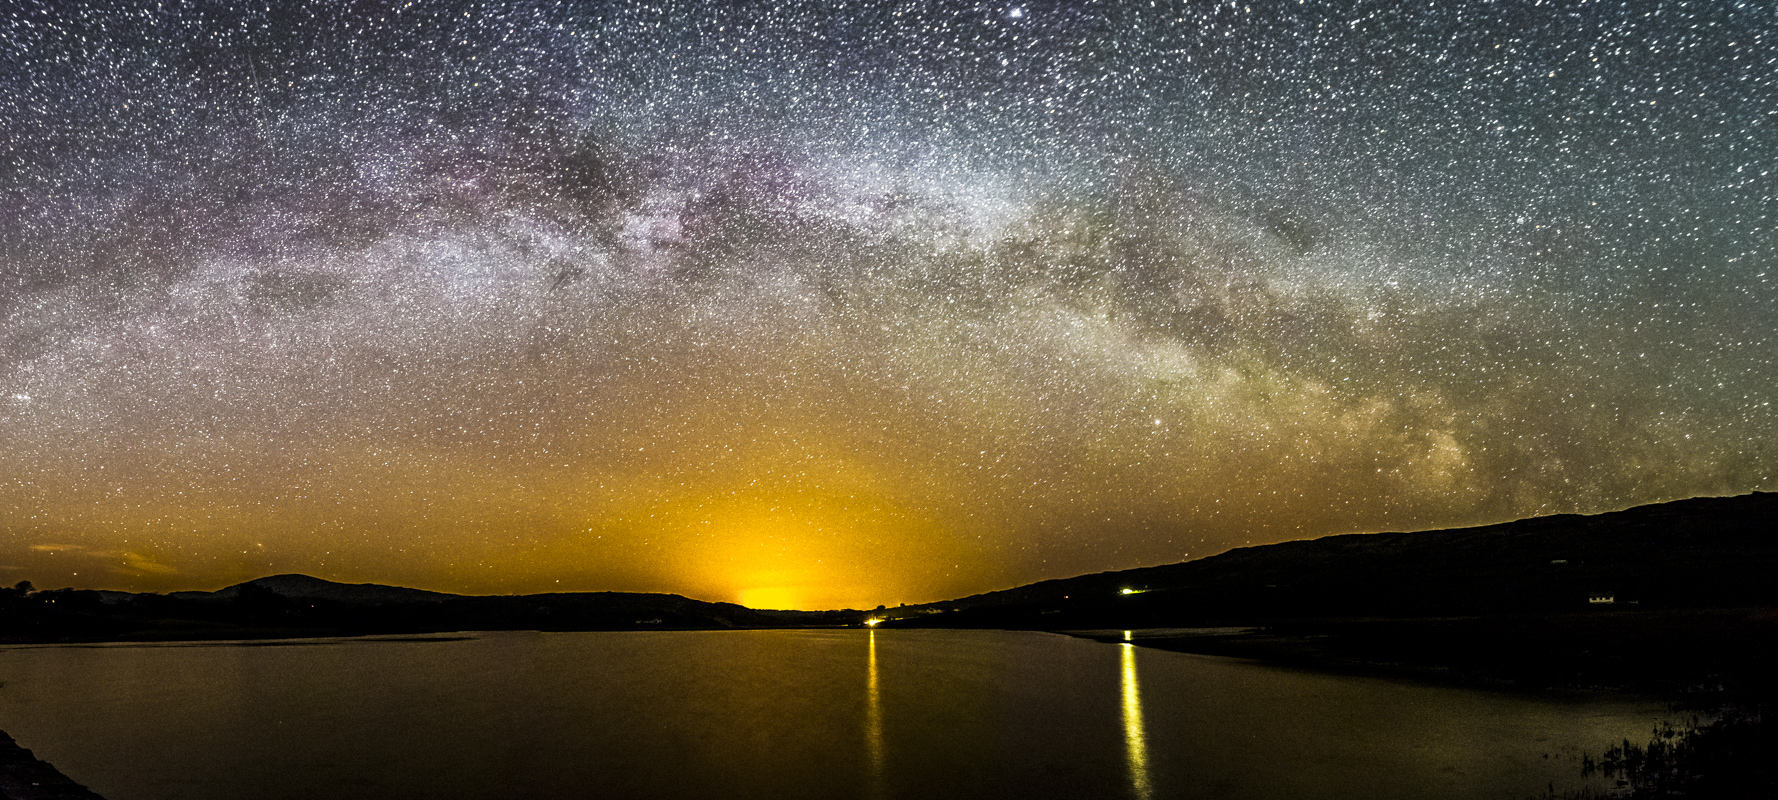 Milkyway, Westcork, Cork, Wild Atlantic Way, Goleen, Ireland